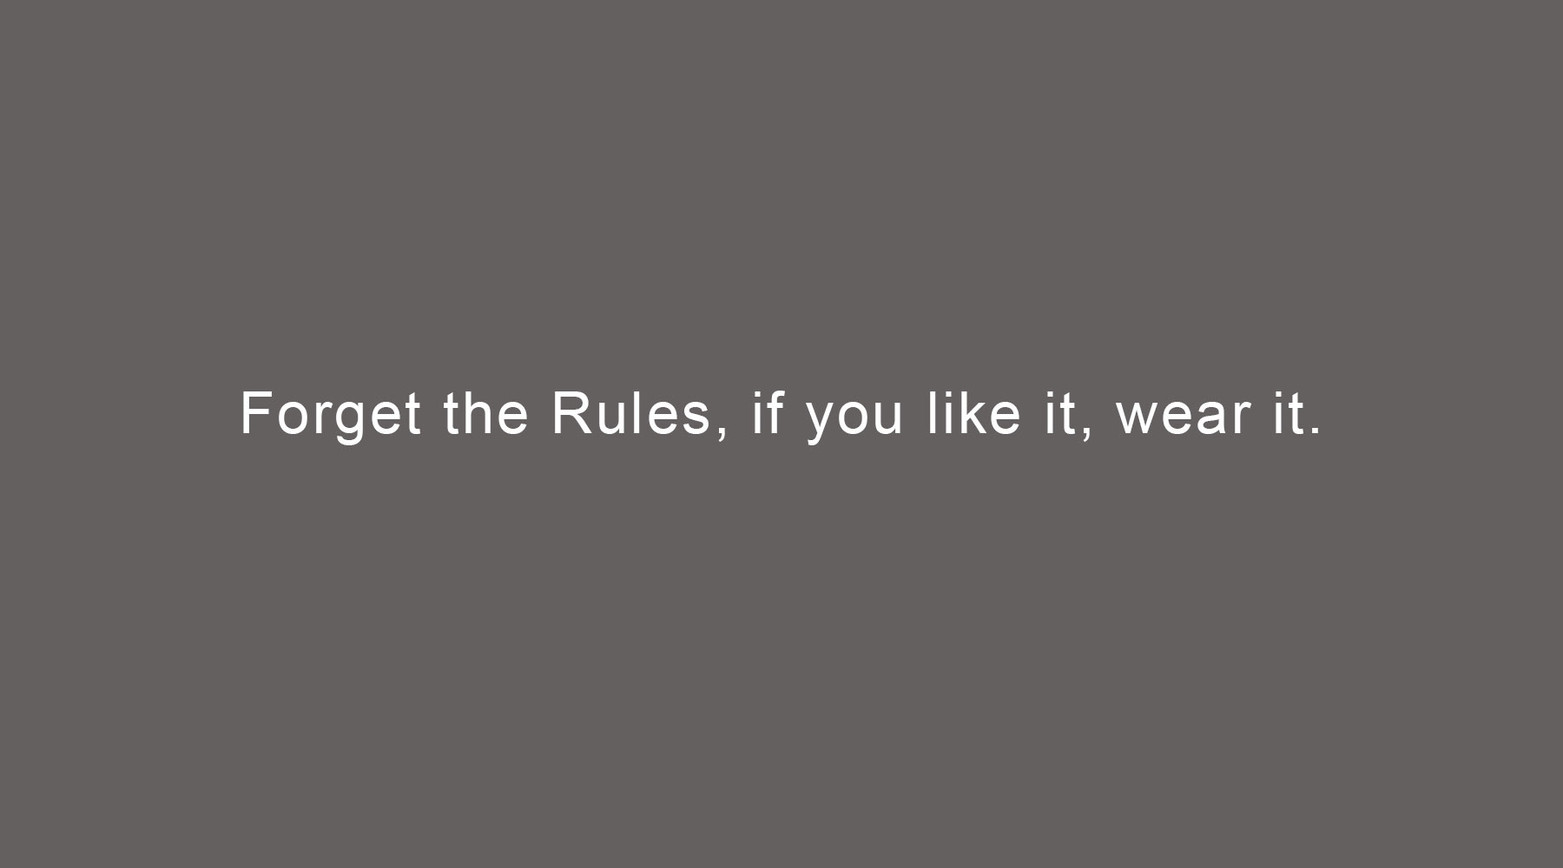 Forget-the-rules.jpg